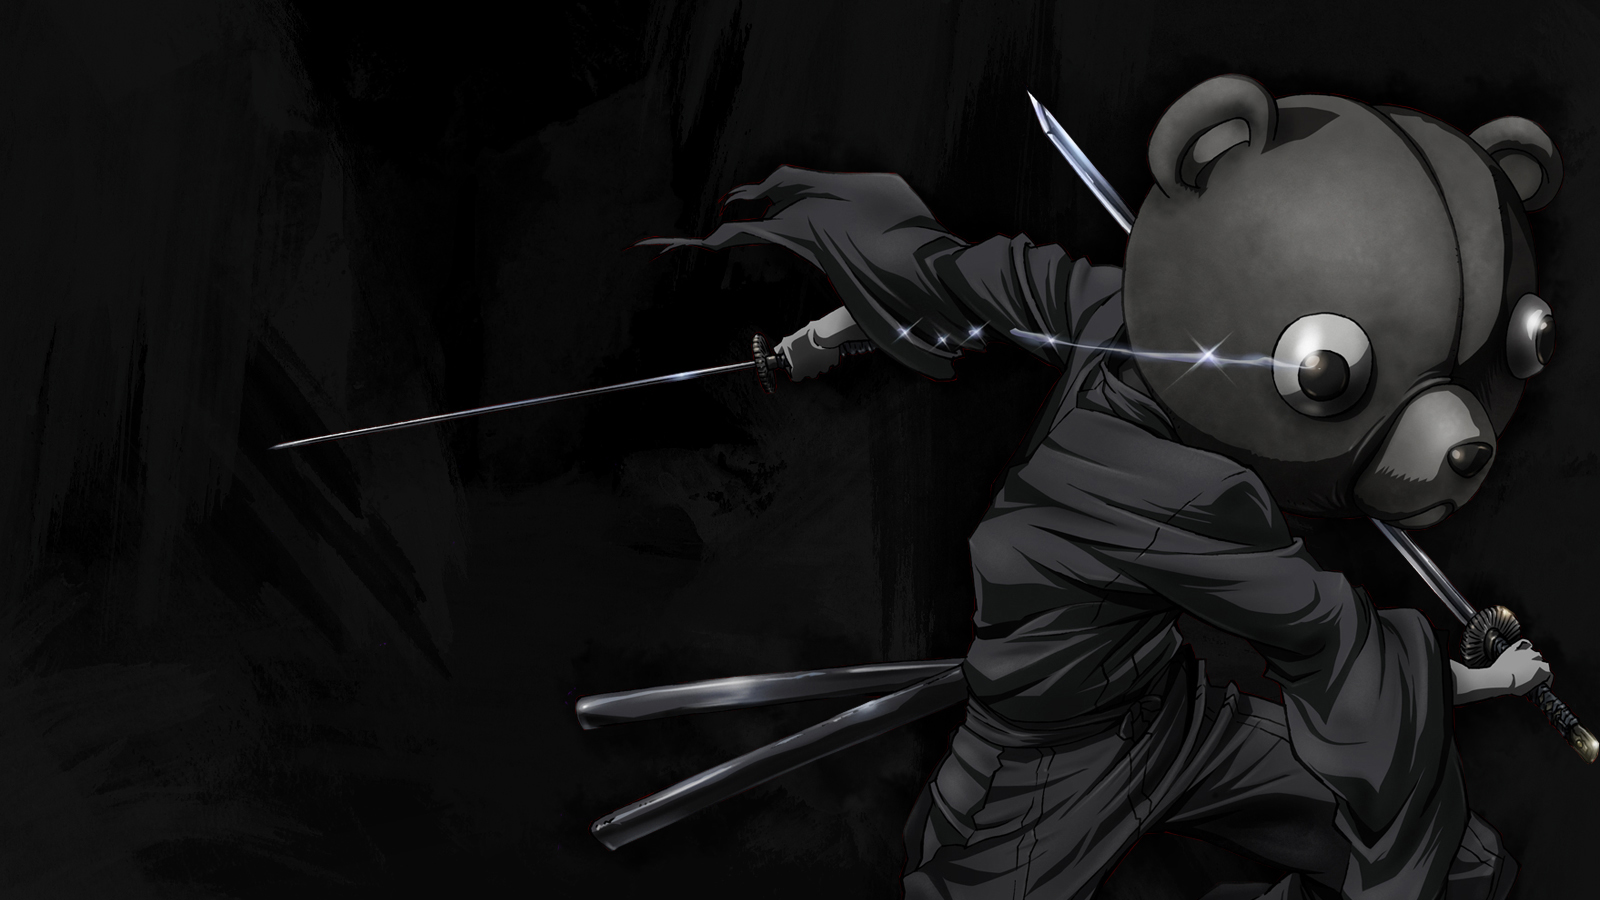 afro samurai wallpaper and background image | 1600x900 | id:197557